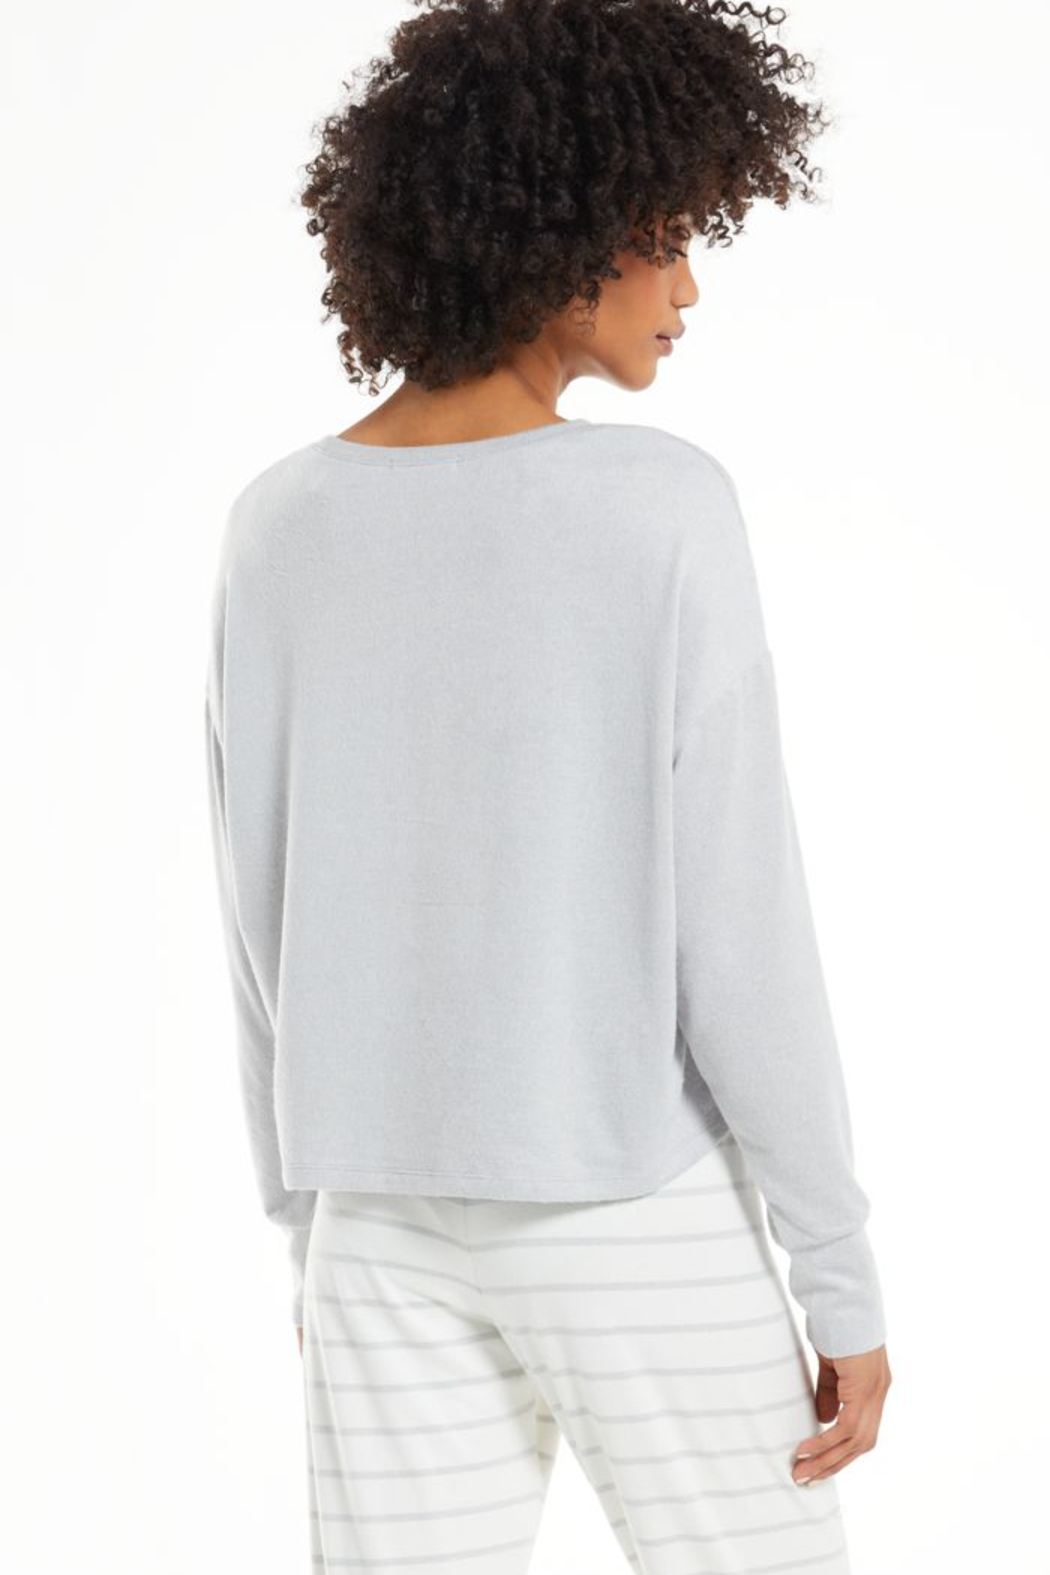 z supply Lina Smile Top - Side Cropped Image